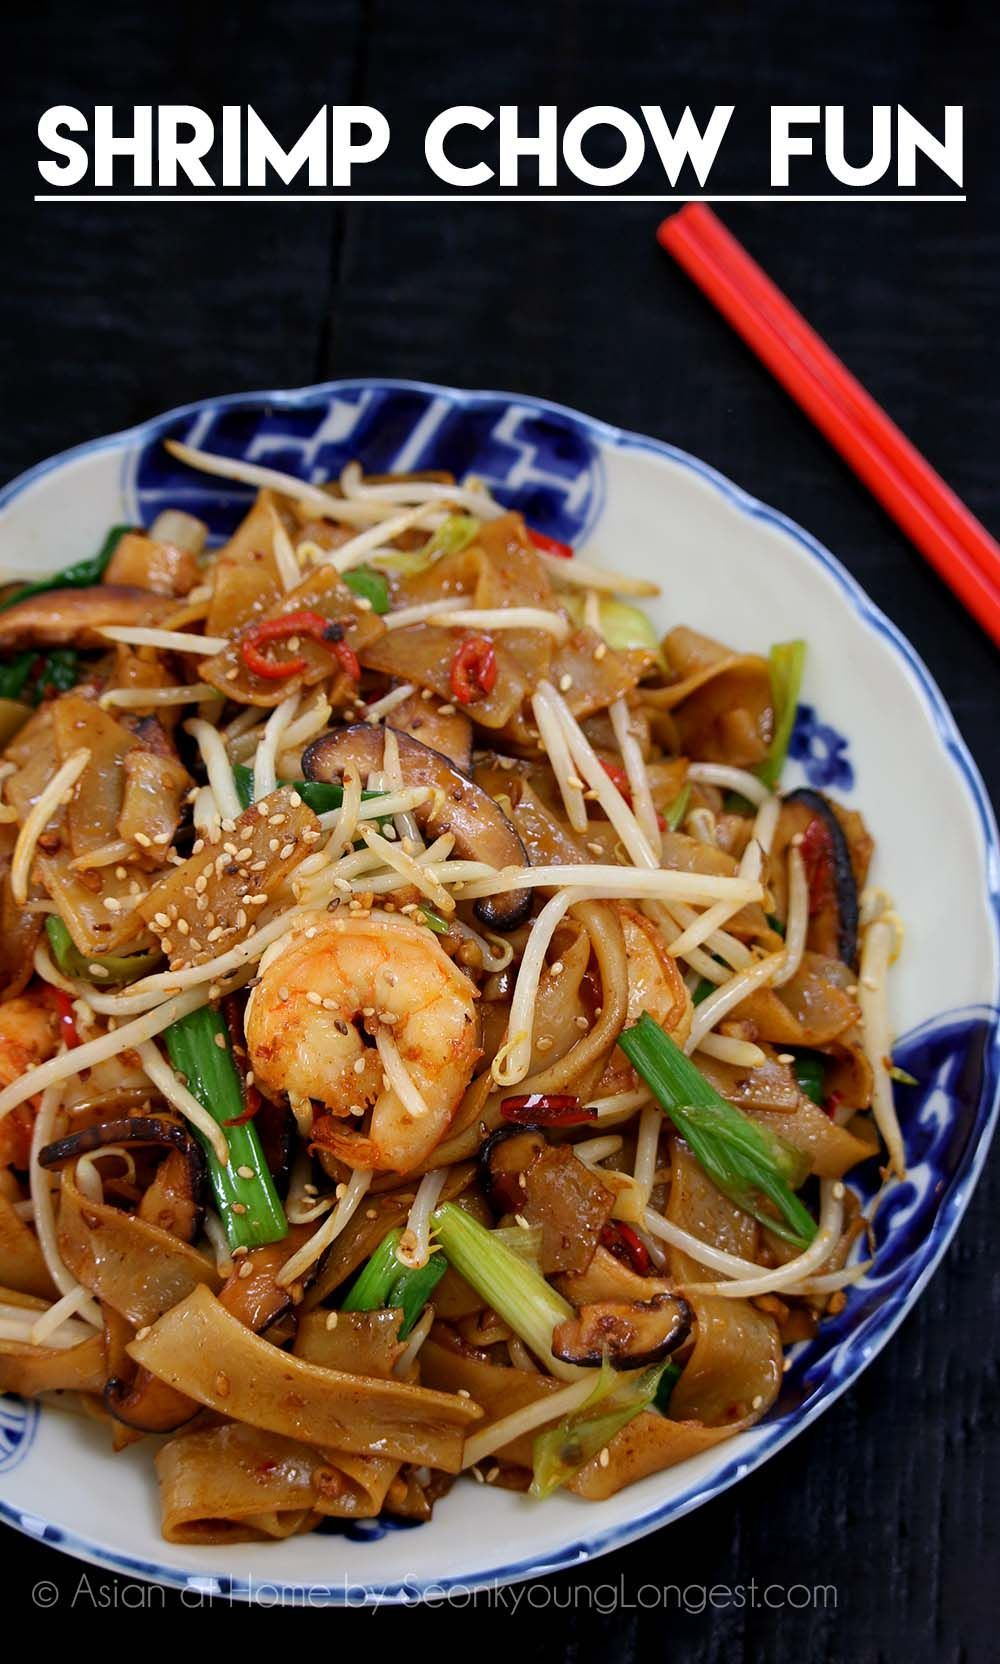 Hi guys today im going to share delicious and easy shrimp chow fun hi guys today im going to share delicious and easy shrimp chow fun recipe with you i partnered with pearl river bridge the most popular chinese soy forumfinder Choice Image